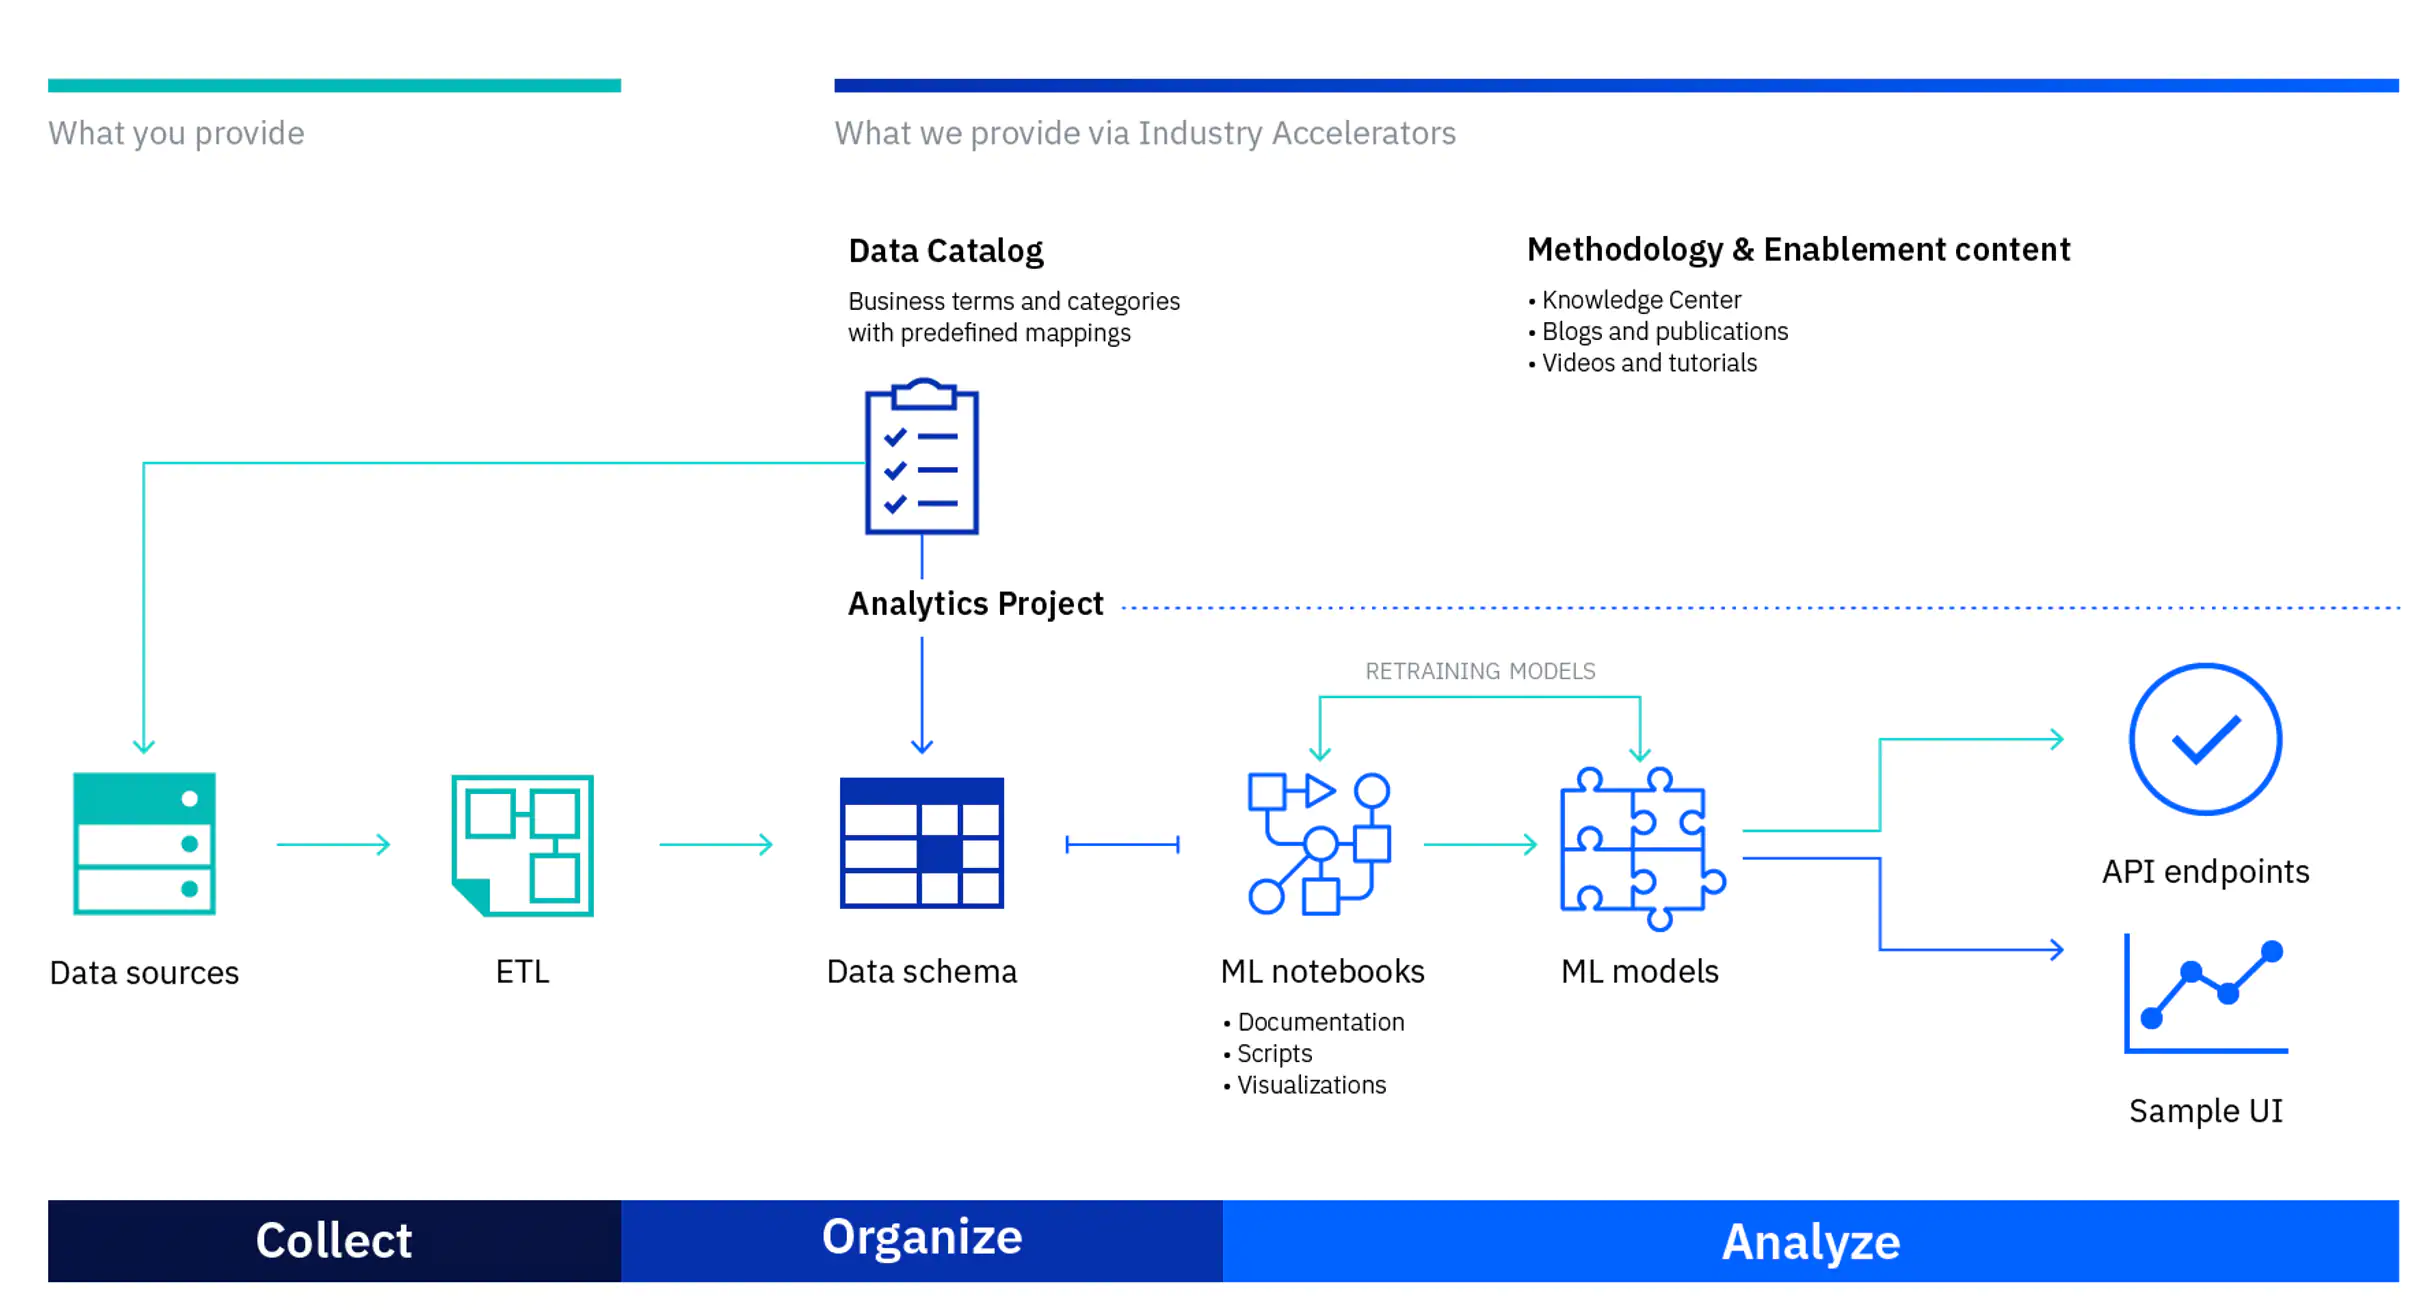 Accelerate AI with Industry Accelerators on IBM Cloud Pak for Data as a Service